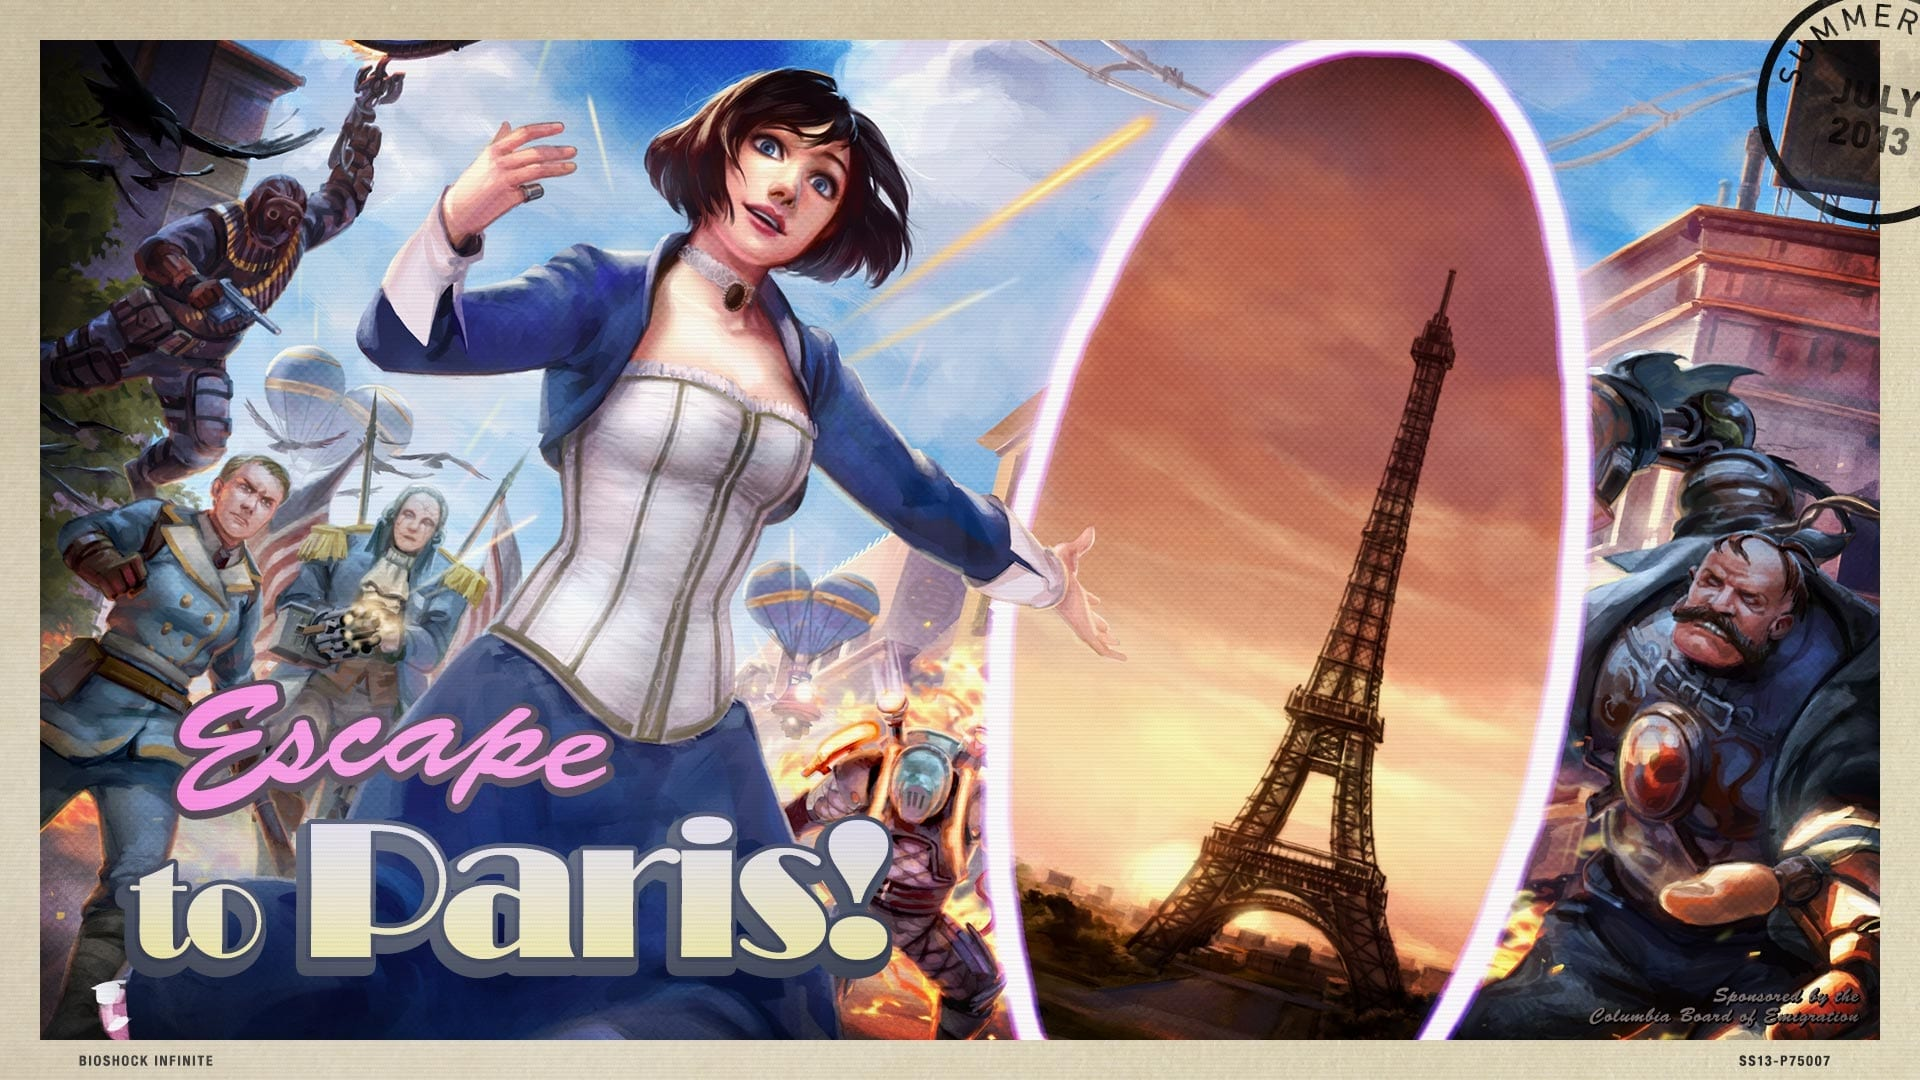 the-2013-steam-summer-getaway-sale-bioshock-infinite-background-and-post-card